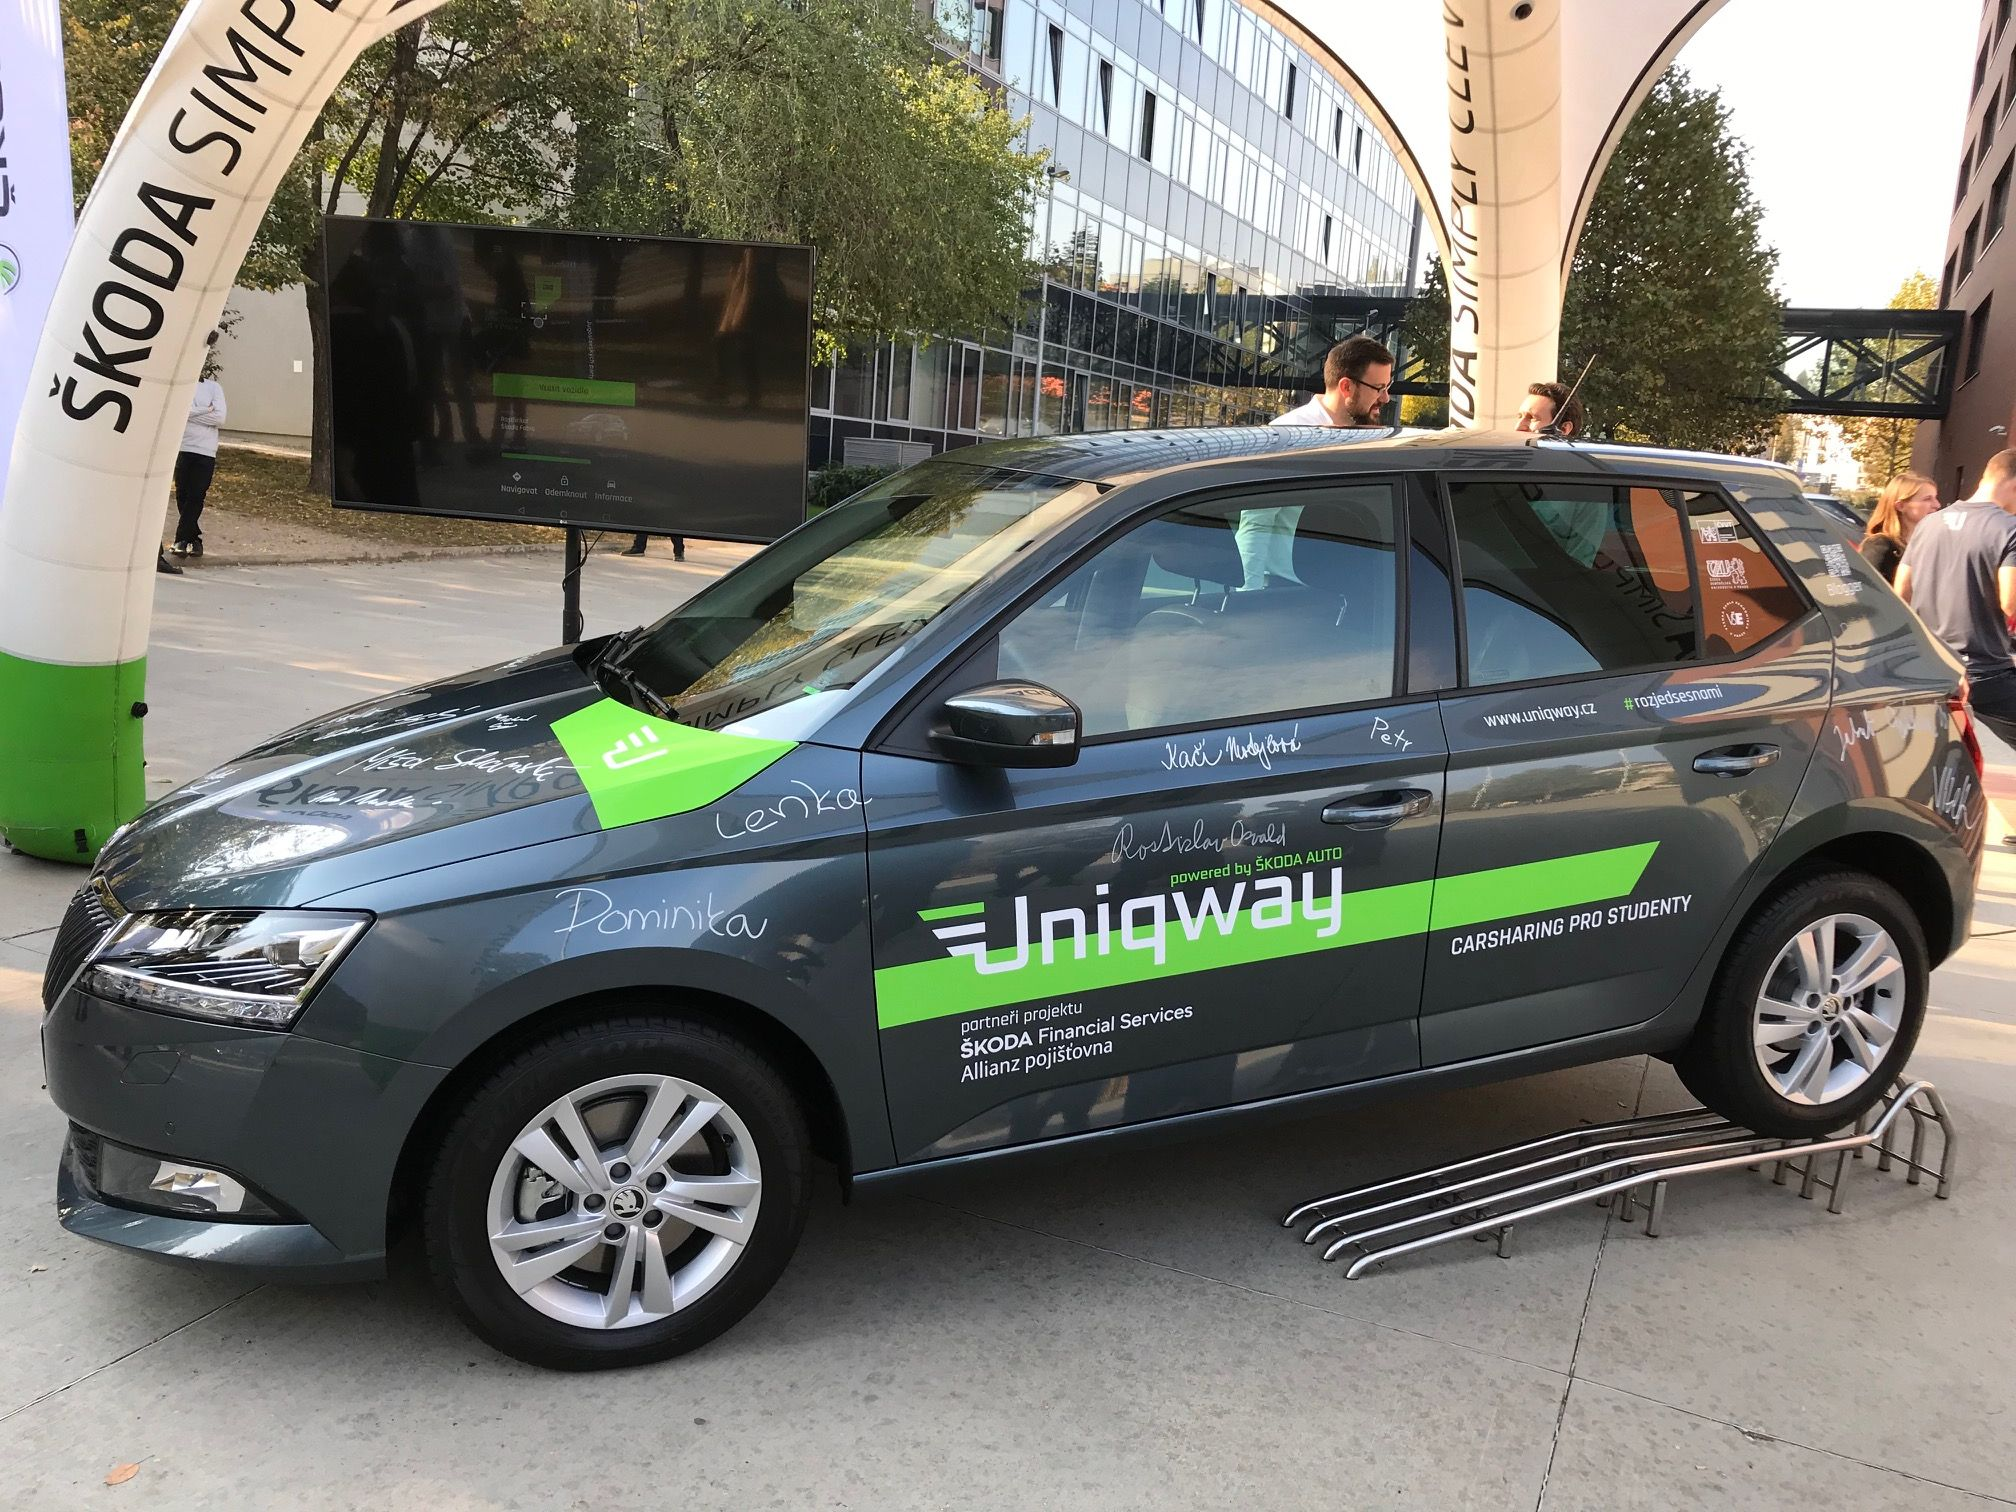 Student Car Sharing launches in Prague – University of Economics a4e787b0662